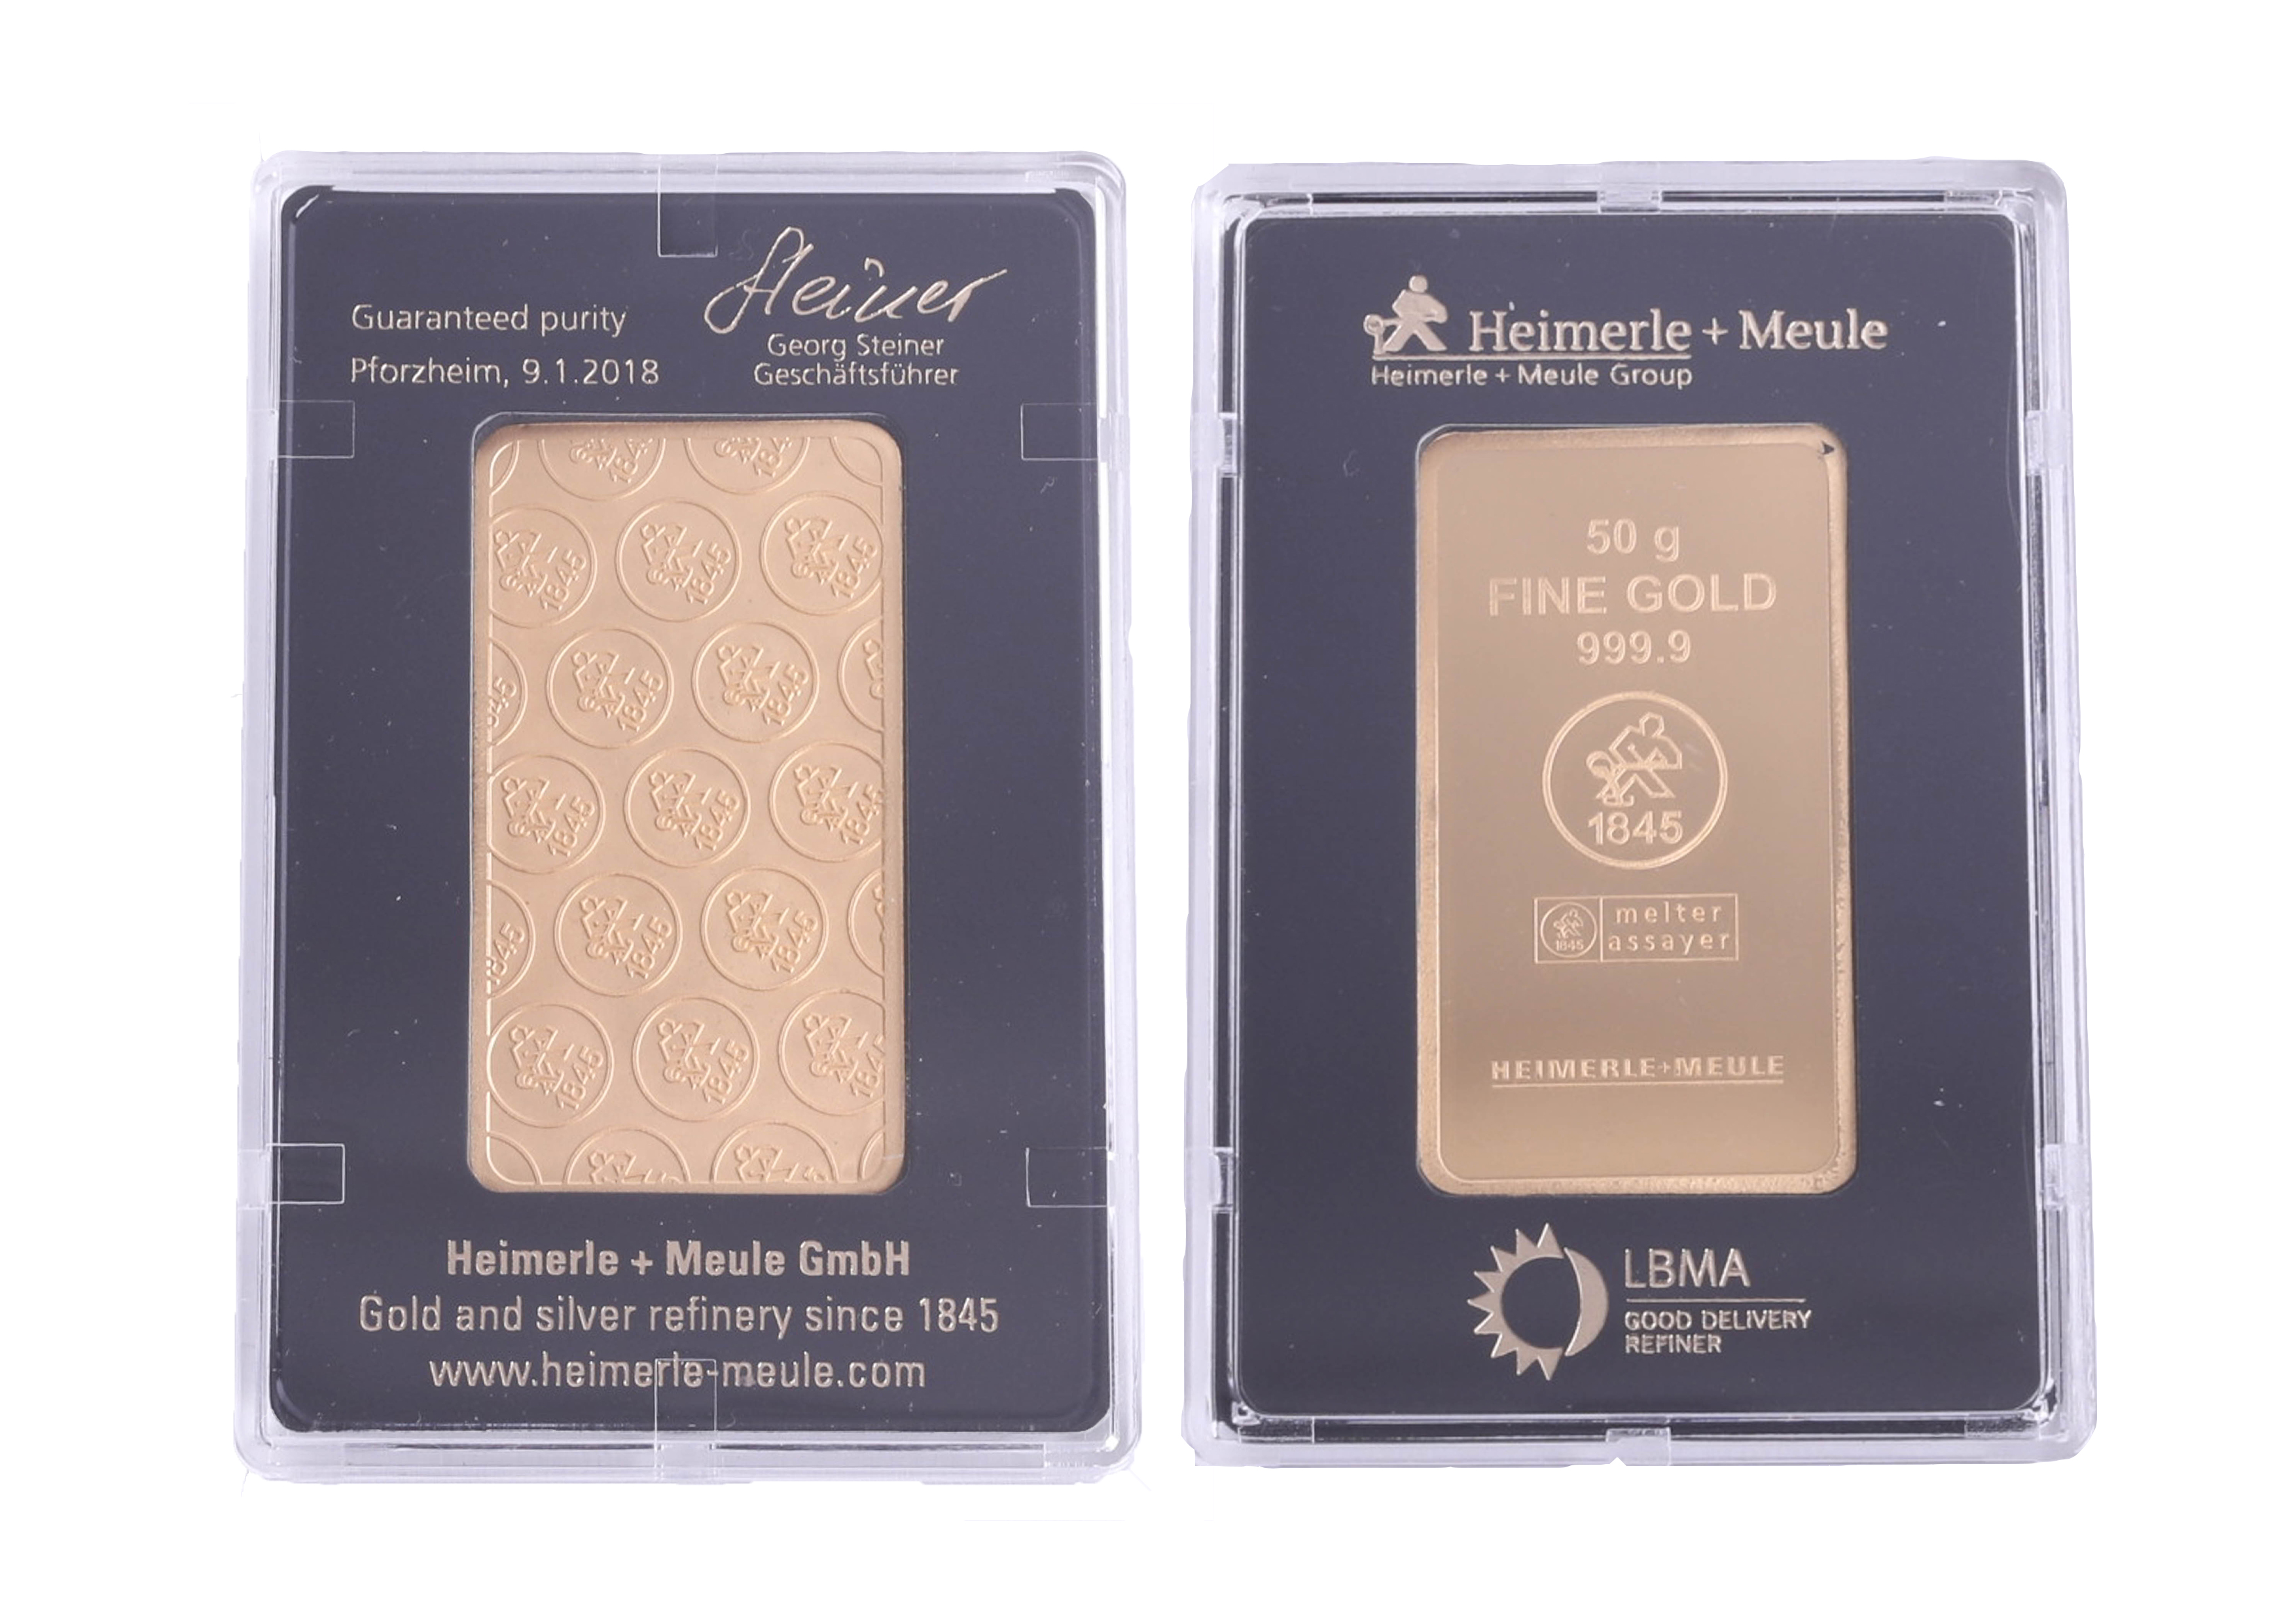 Lot 045 - Gold, a 50g bar of fine gold, 999.9, cased by Heuer, guarantee date 9th January 2018.